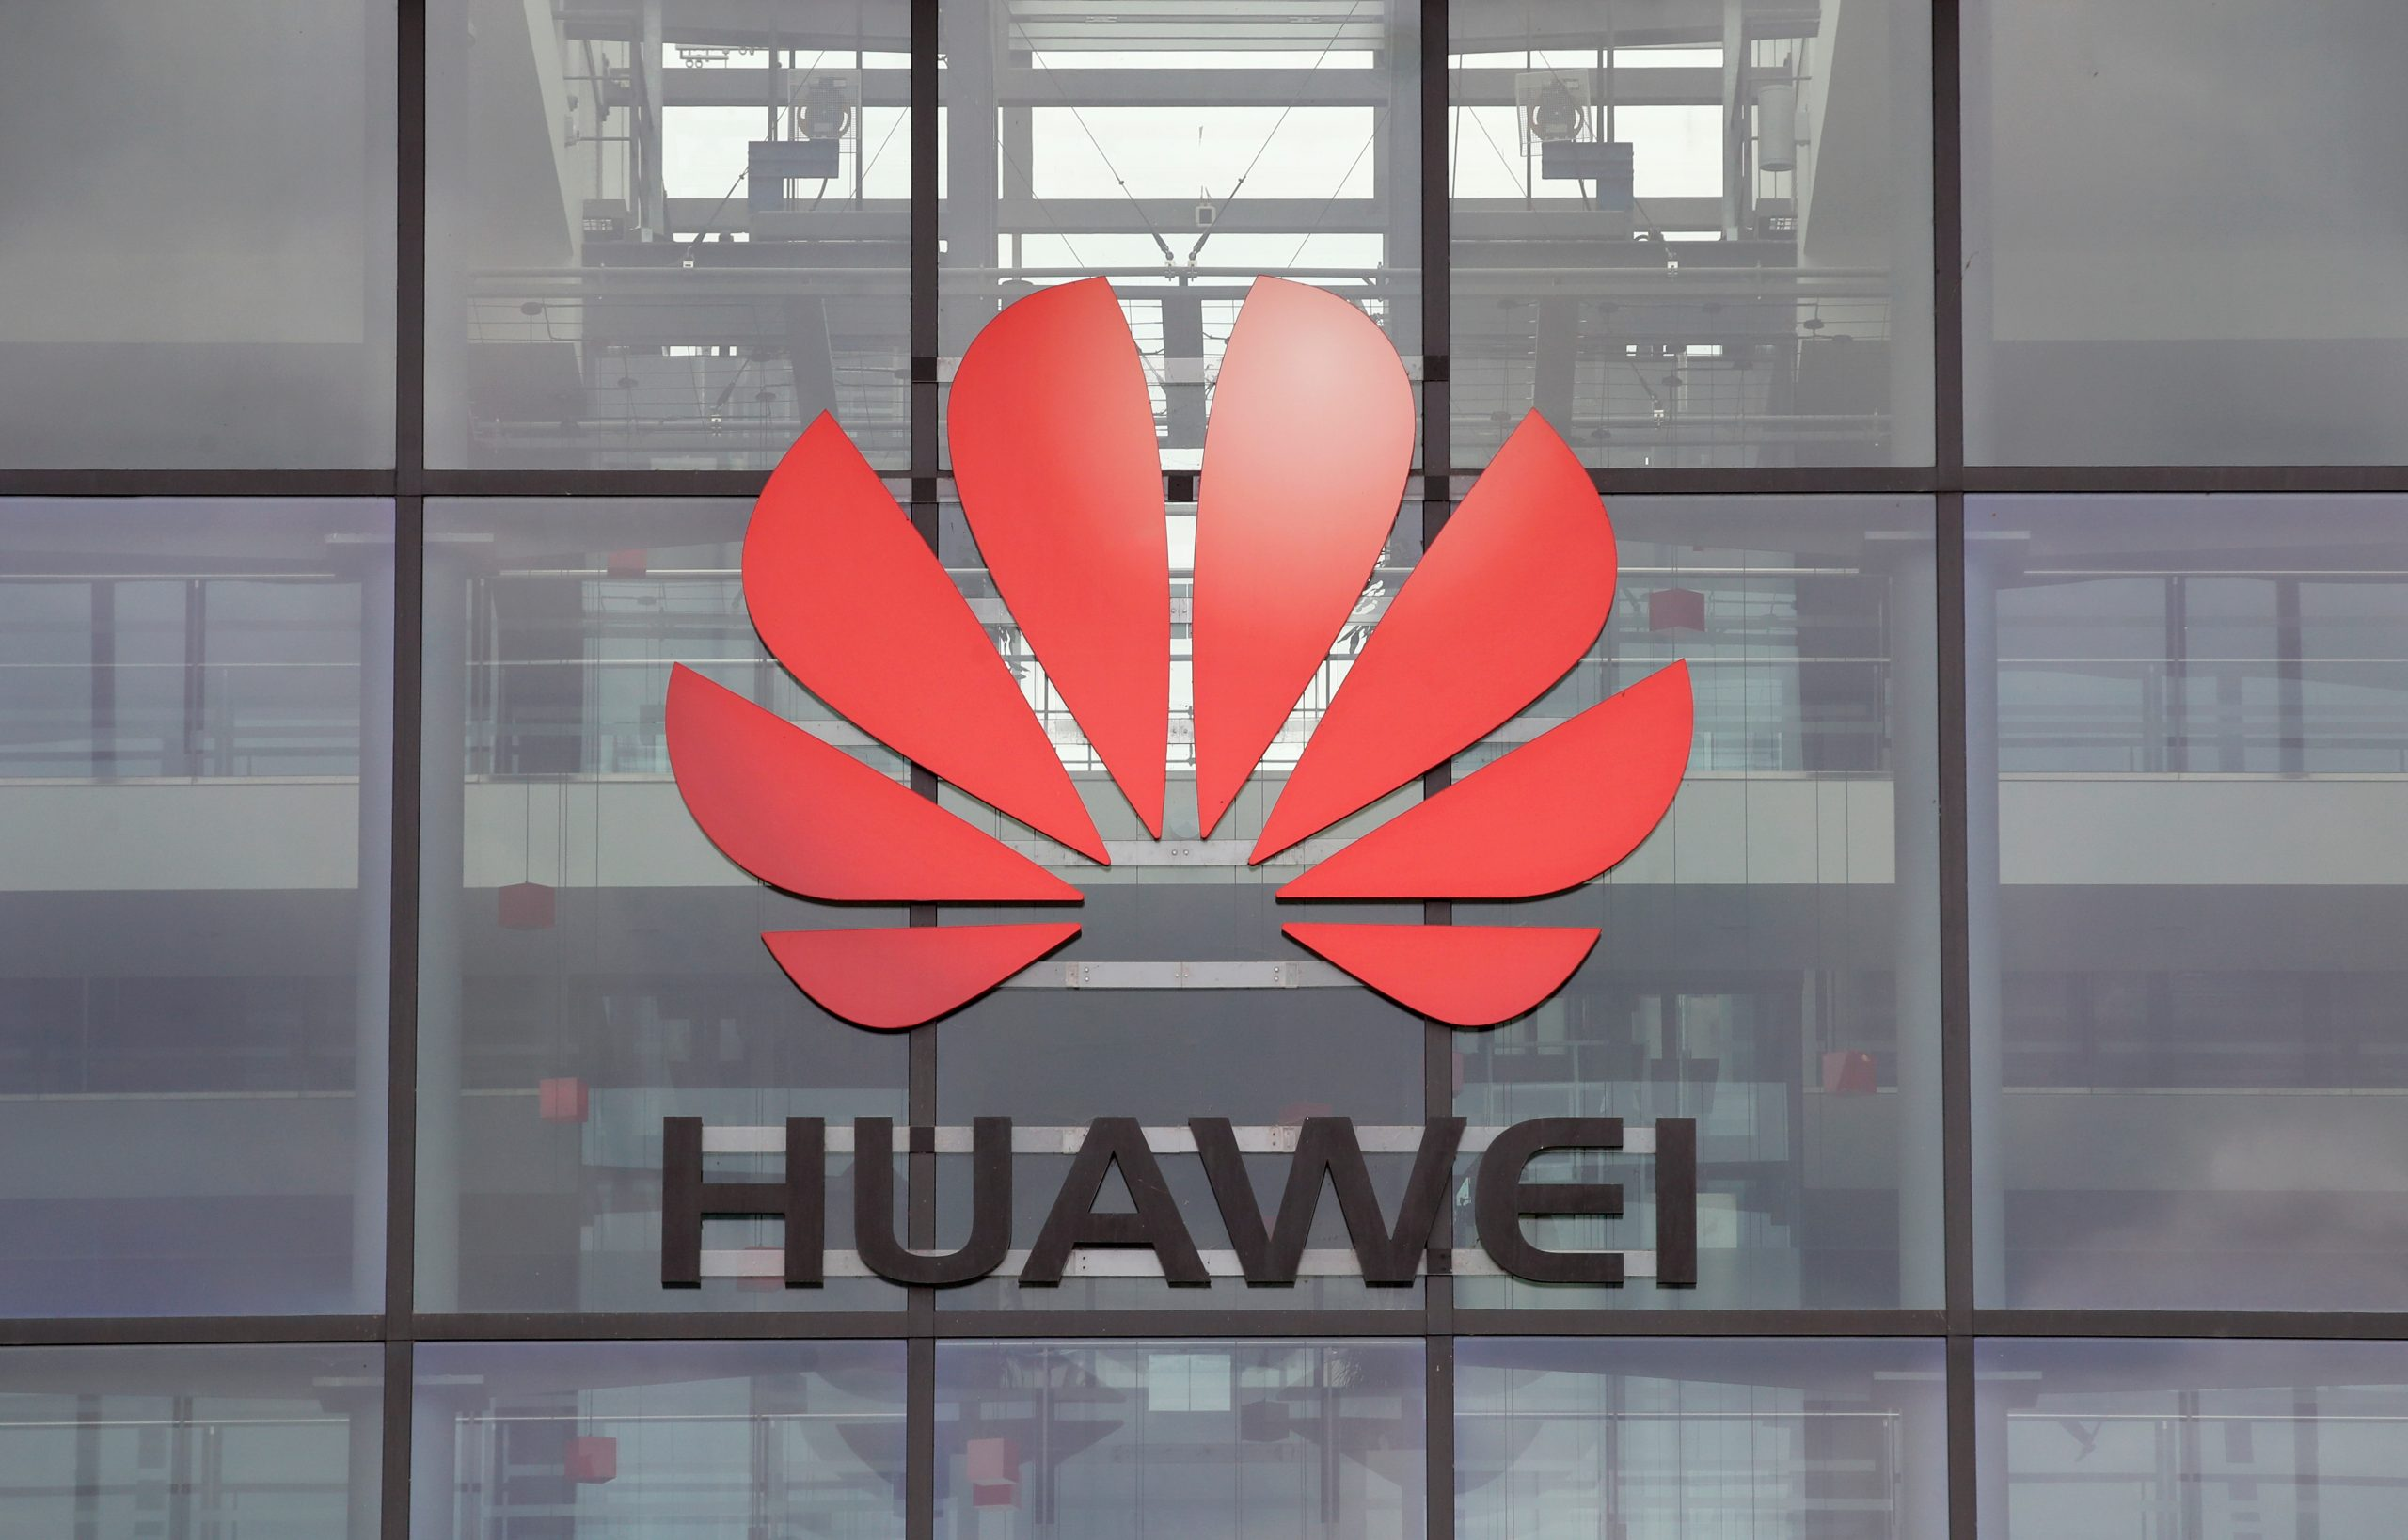 Huawei logo is pictured on the headquarters building in Reading on July 14, 2020. (REUTERS/Matthew Childs)